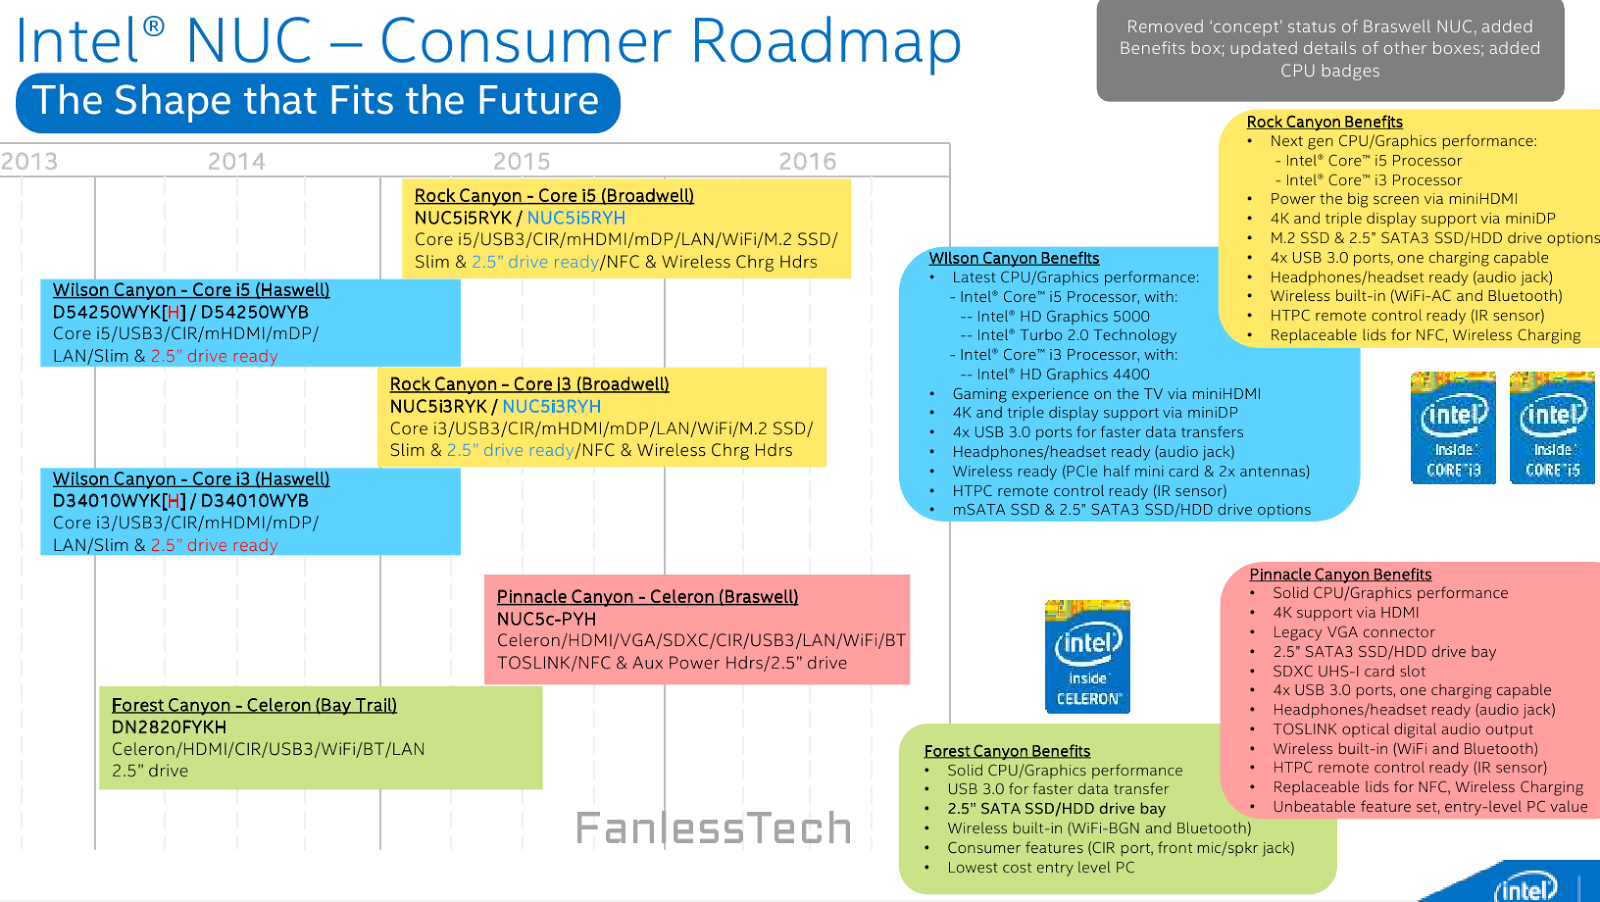 The revised NUC roadmap.